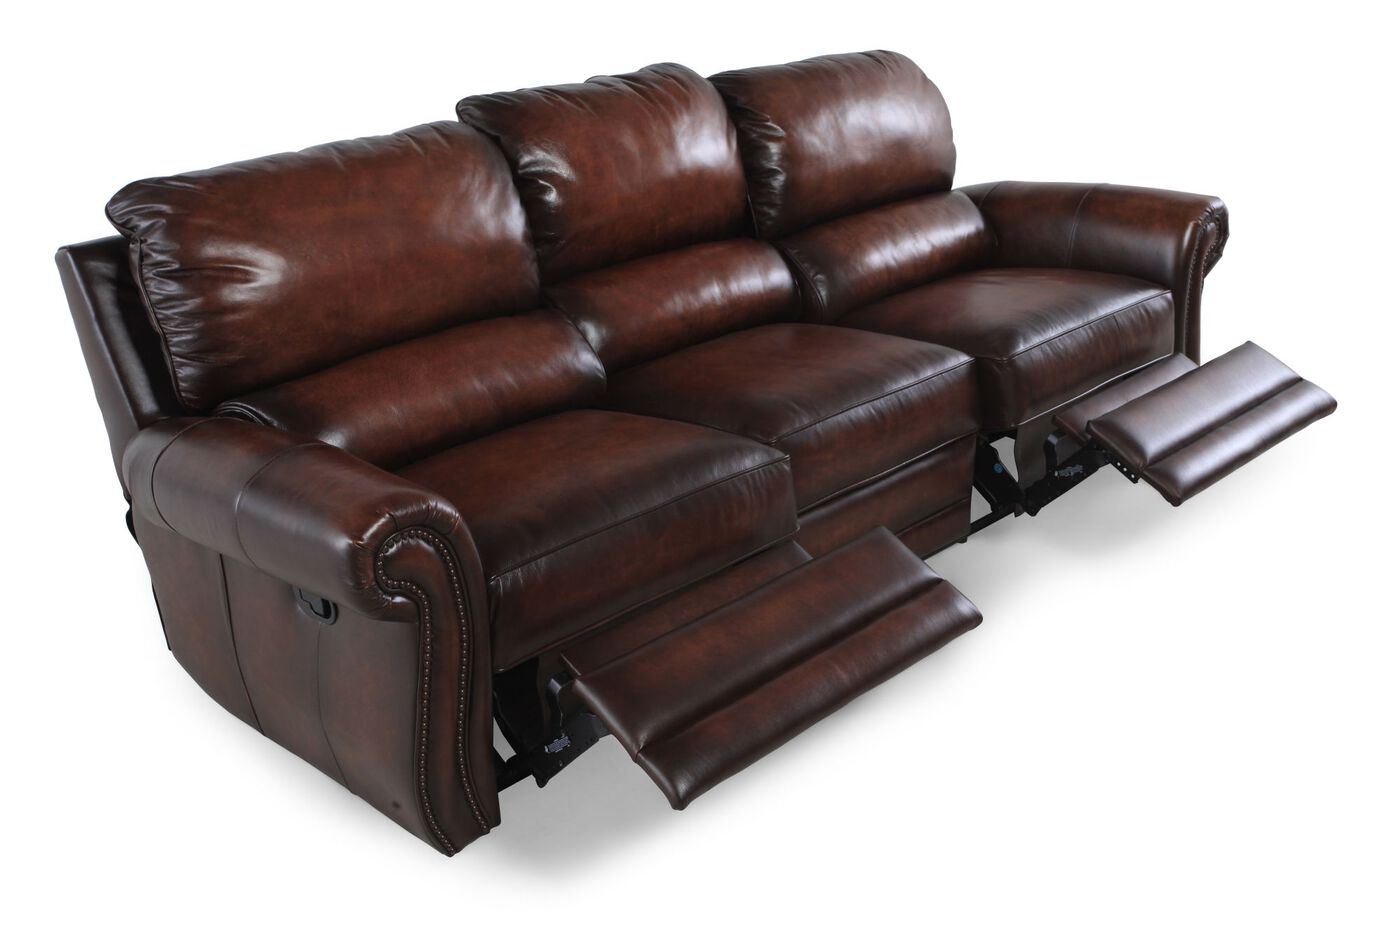 Bernhardt reese double reclining leather sofa mathis for Double leather sofa